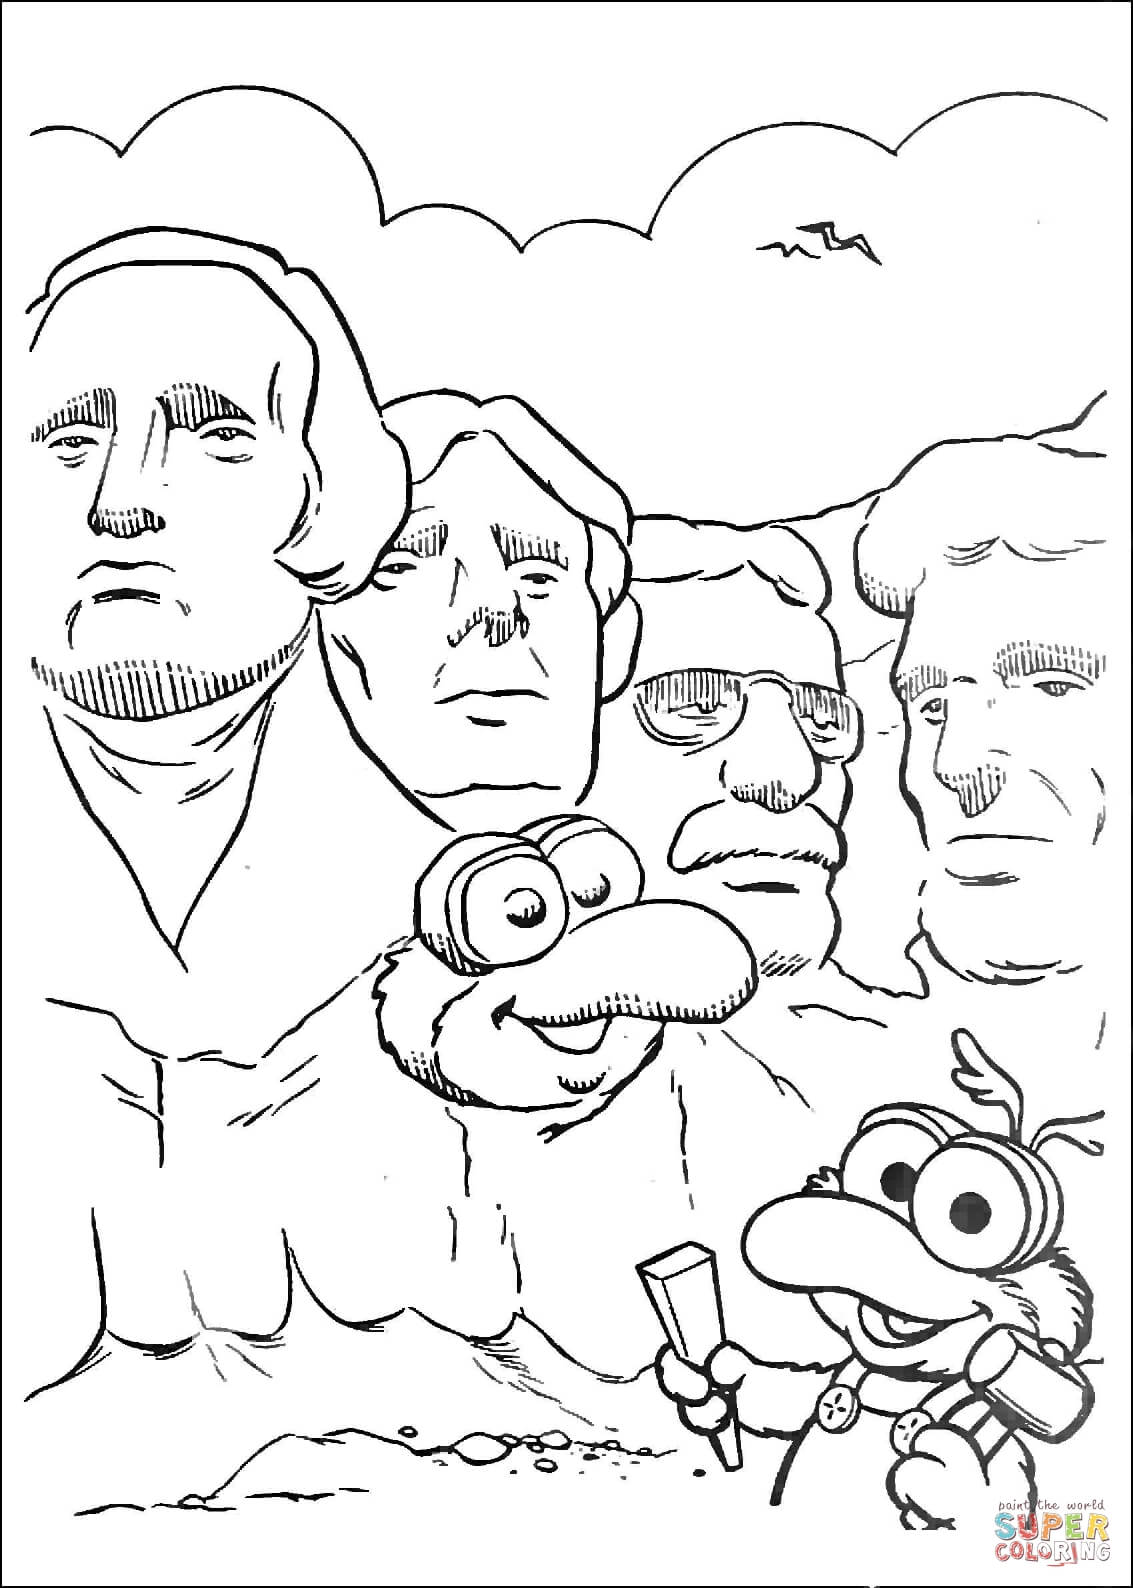 Baby Gonzo And Mount Rushmore National Memorial Coloring